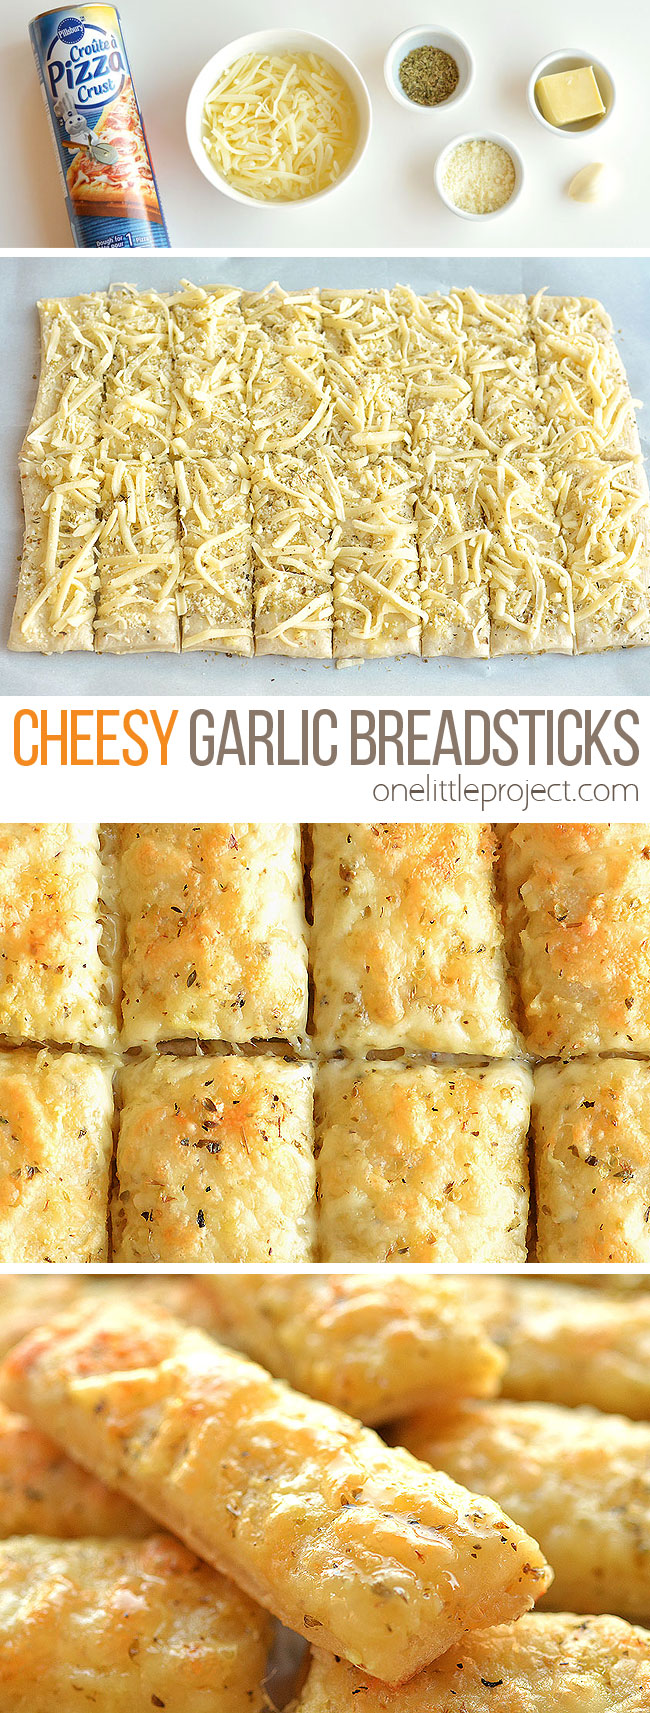 These cheesy garlic breadsticks are so easy to make and they taste SO GOOD! They take less than 20 minutes from start to finish and go really well with your favorite soups and salads. You can even serve them on their own with a little bowl of marinara sauce. This is such an easy, awesome and super delicious side dish recipe that uses Pillsbury refrigerated pizza crust.